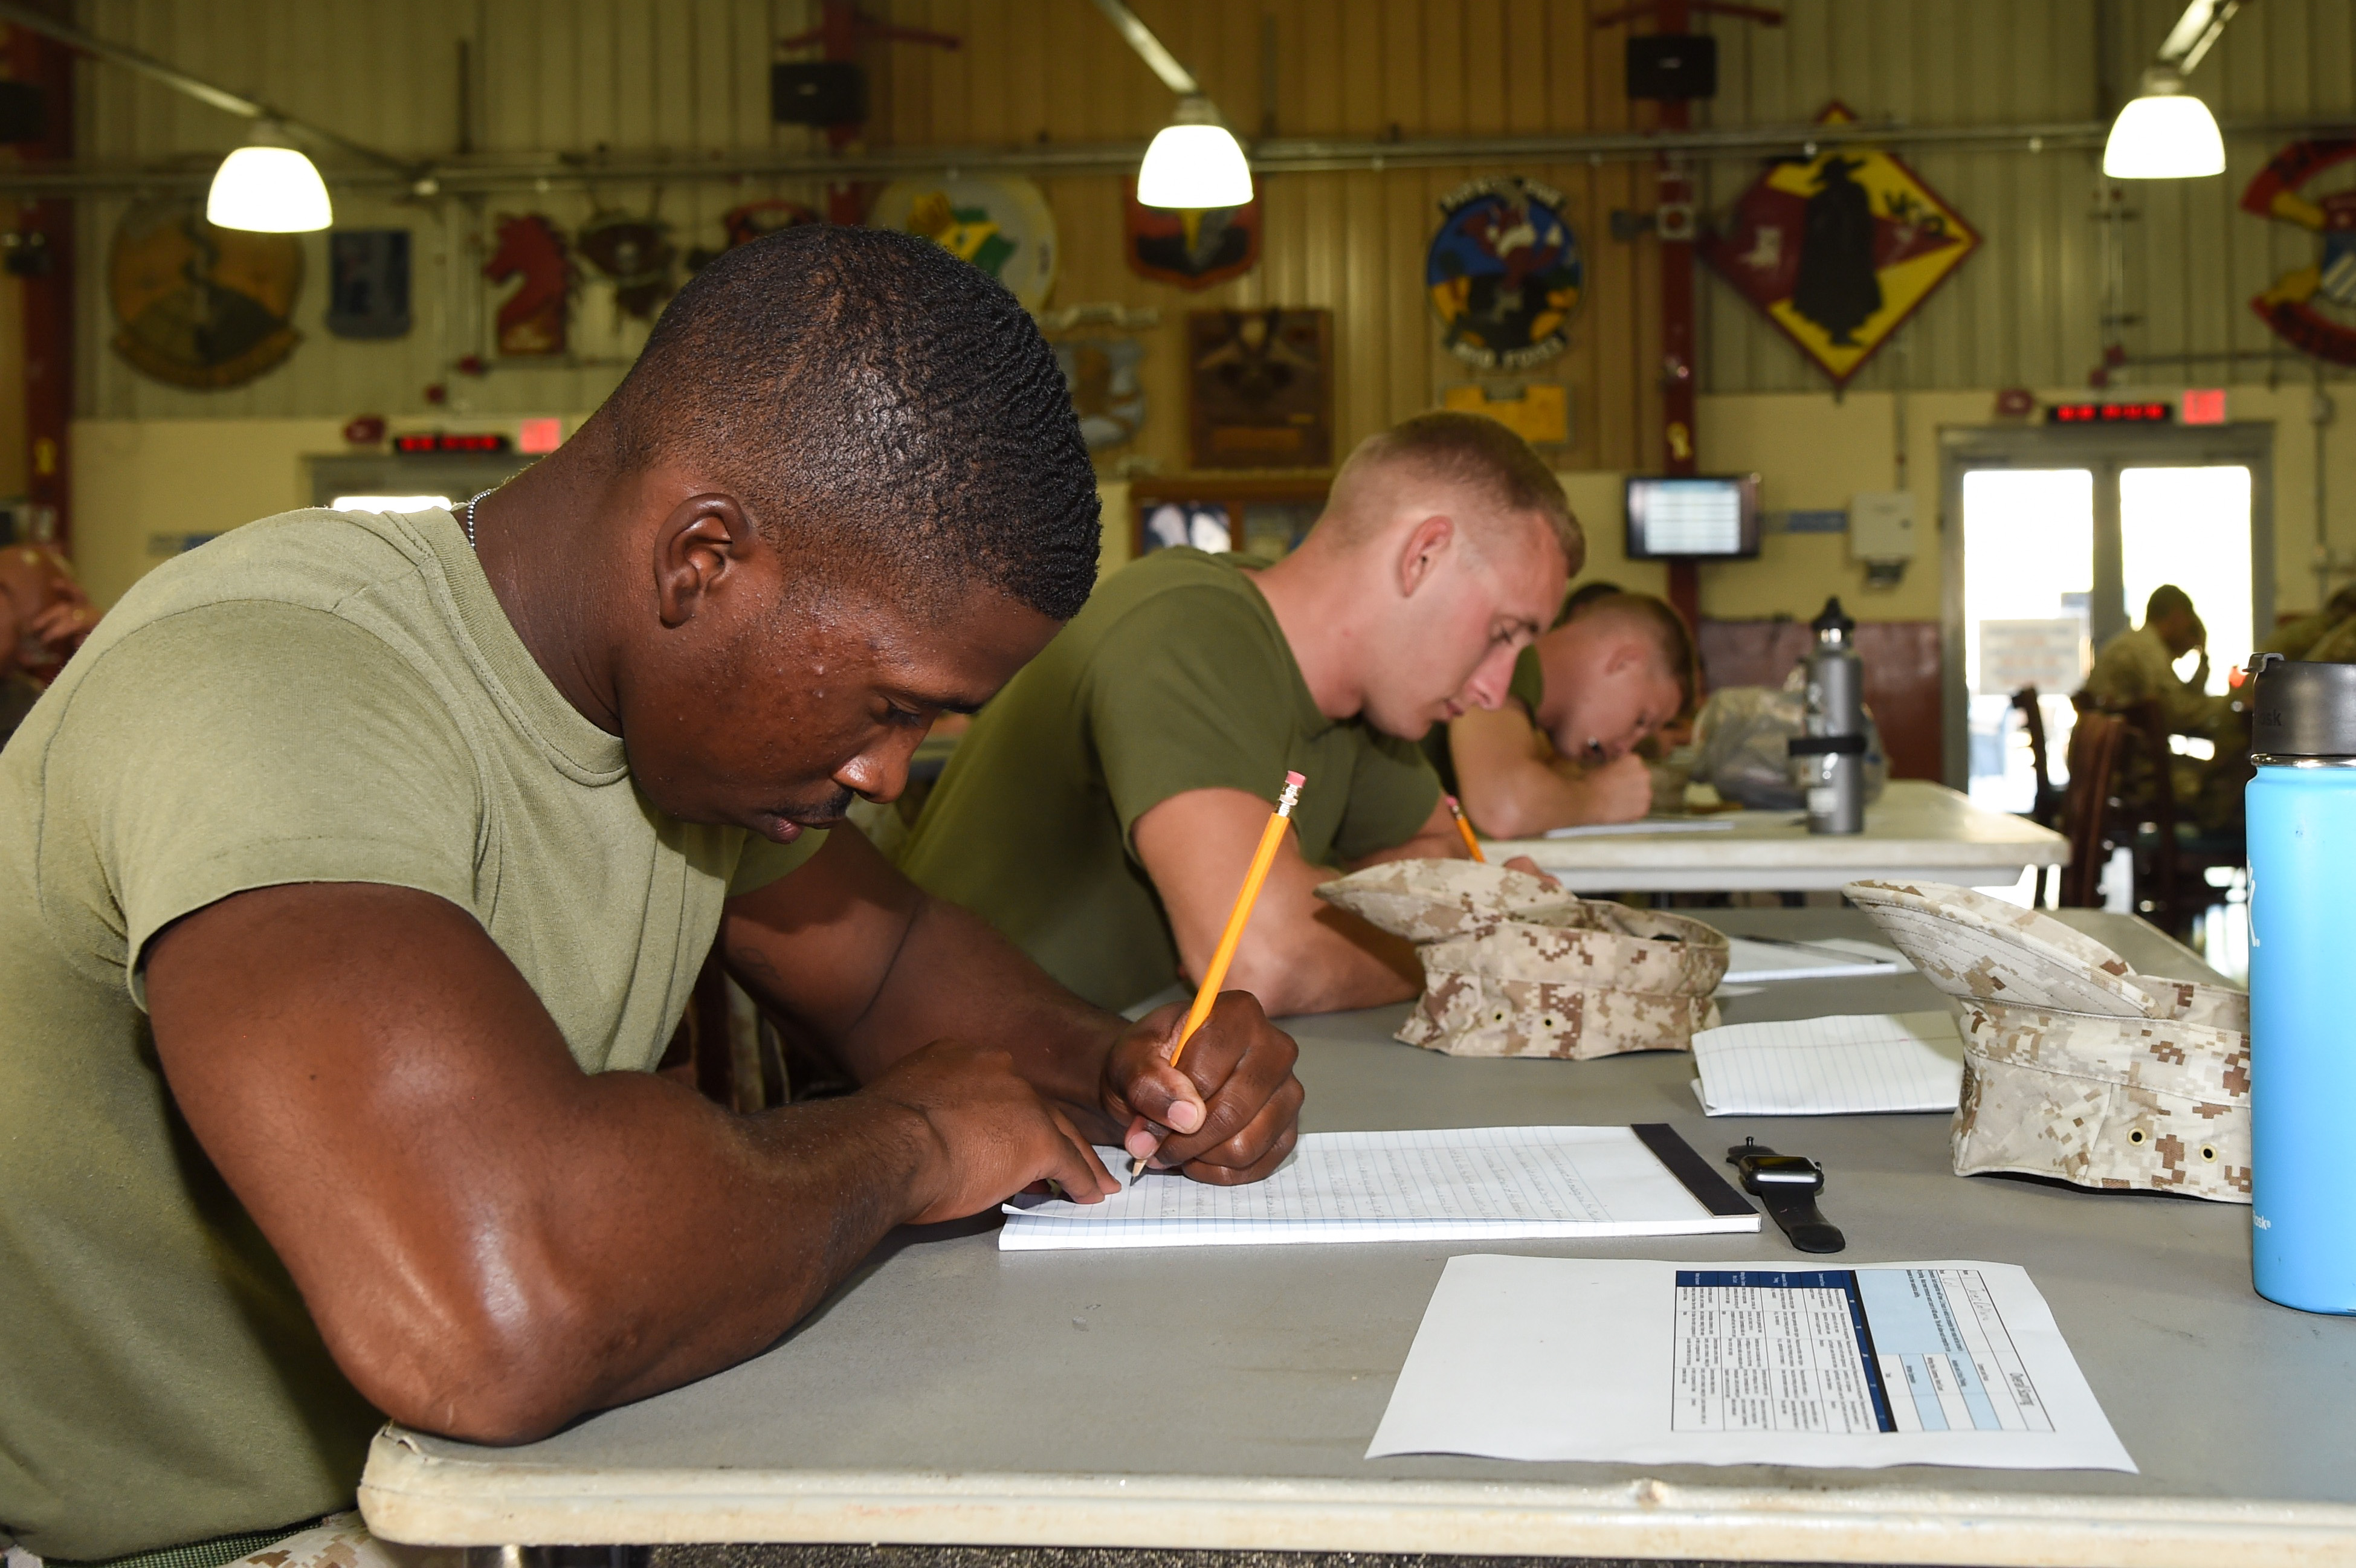 Participants write an essay during the final portion of the Joint Warrior Competition, Nov. 19, 2016, Camp Lemonnier, Djibouti. Members were given one and a half hours to complete an essay with a minimum of 400 words. The essay was supposed to focus on the mission at Combined Joint Task Force-Horn of Africa and Camp Lemonnier's strategic importance. (U.S. Air National Guard photo by Staff Sgt. Penny Snoozy)